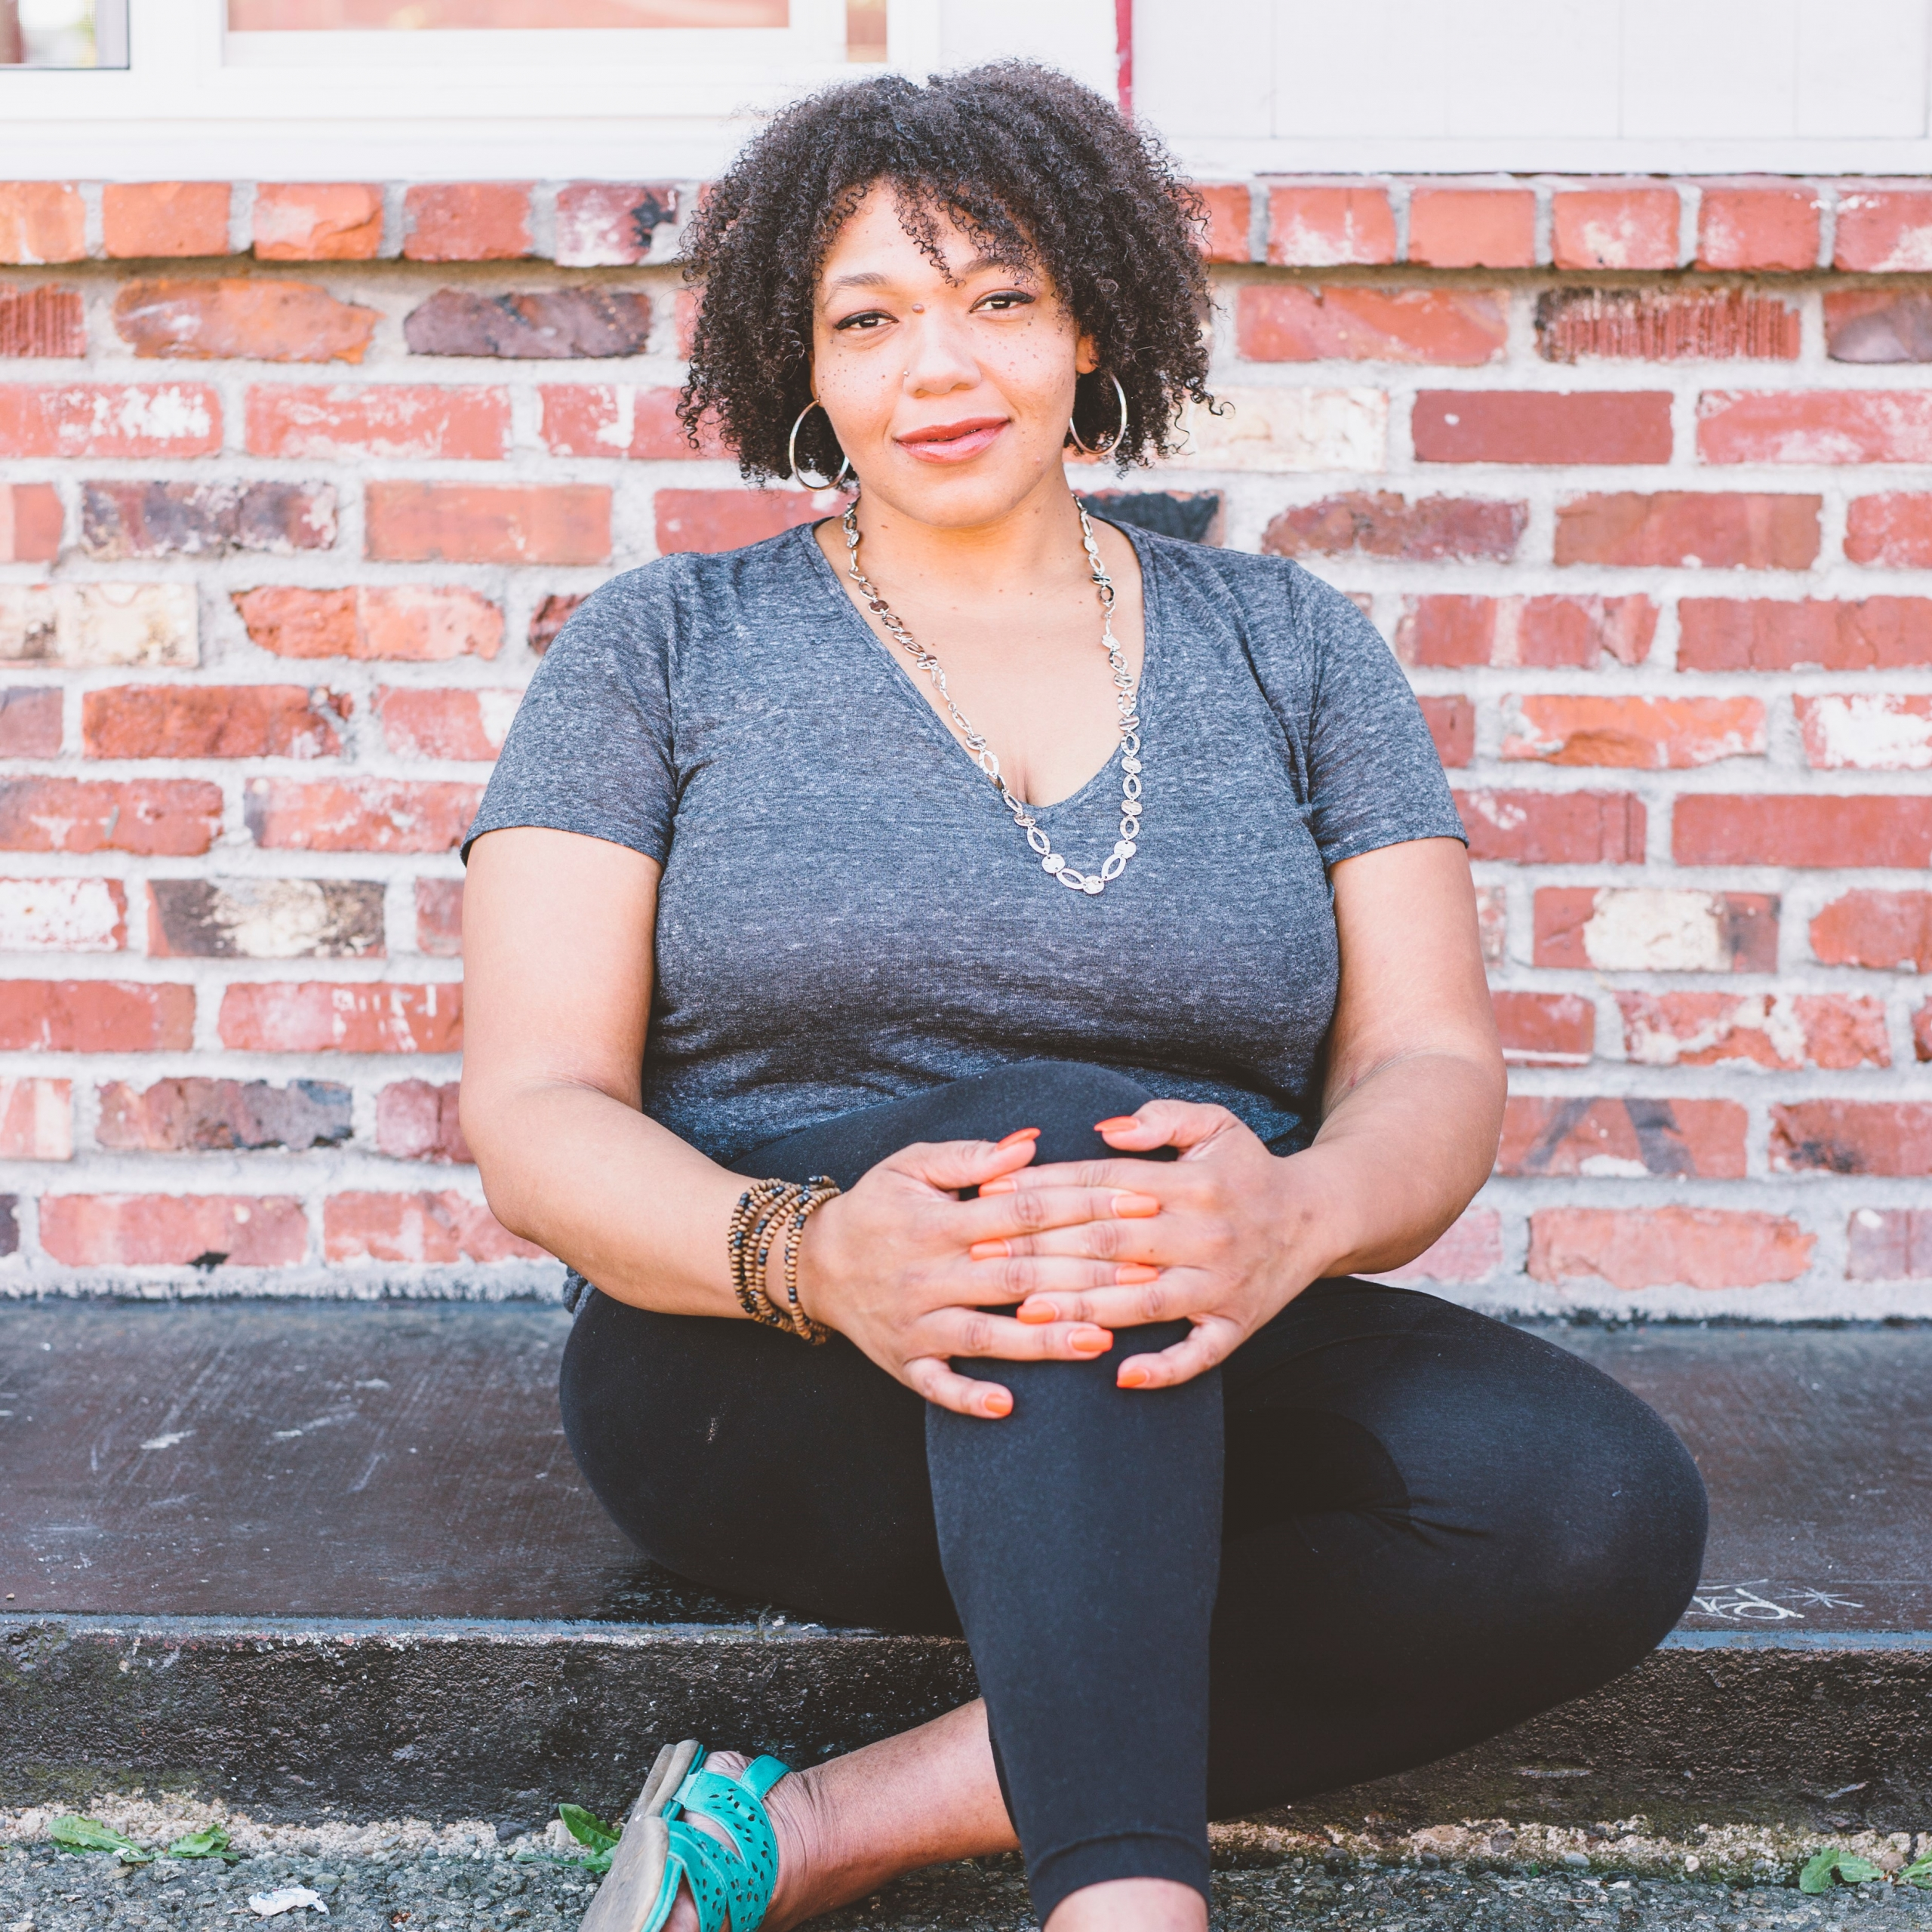 Photo of SWASH Body owner and CEO Aikita Jones posed seated on the sidewalk in front of a brick wall.